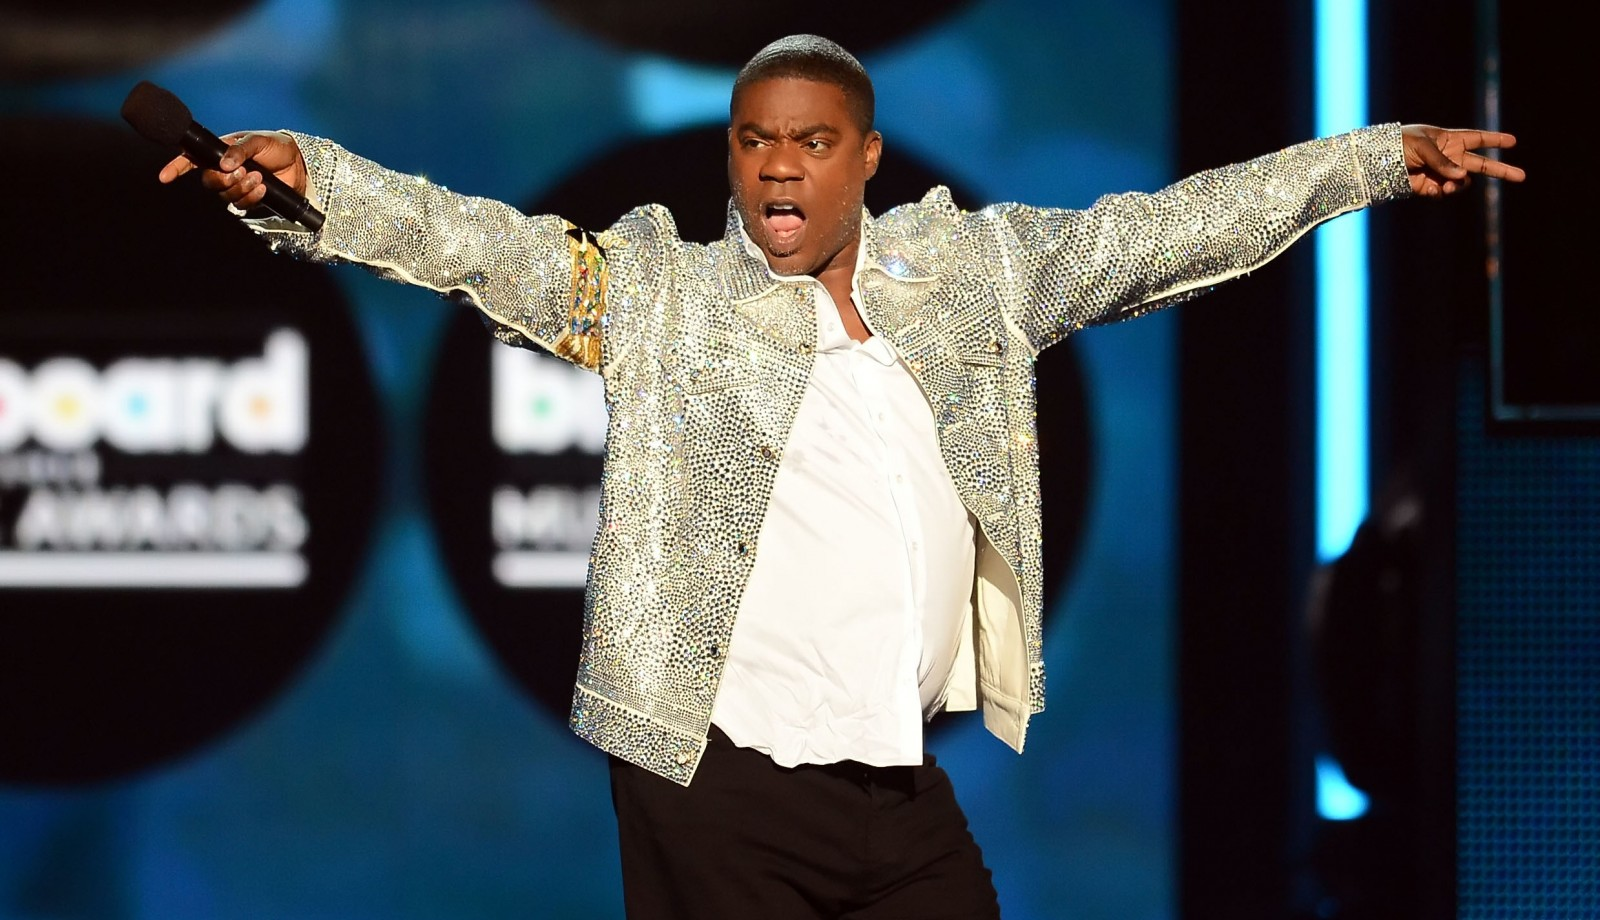 Tracy Morgan performed stand-up in the Seneca Niagara Events Center on Friday night. (Getty Images)